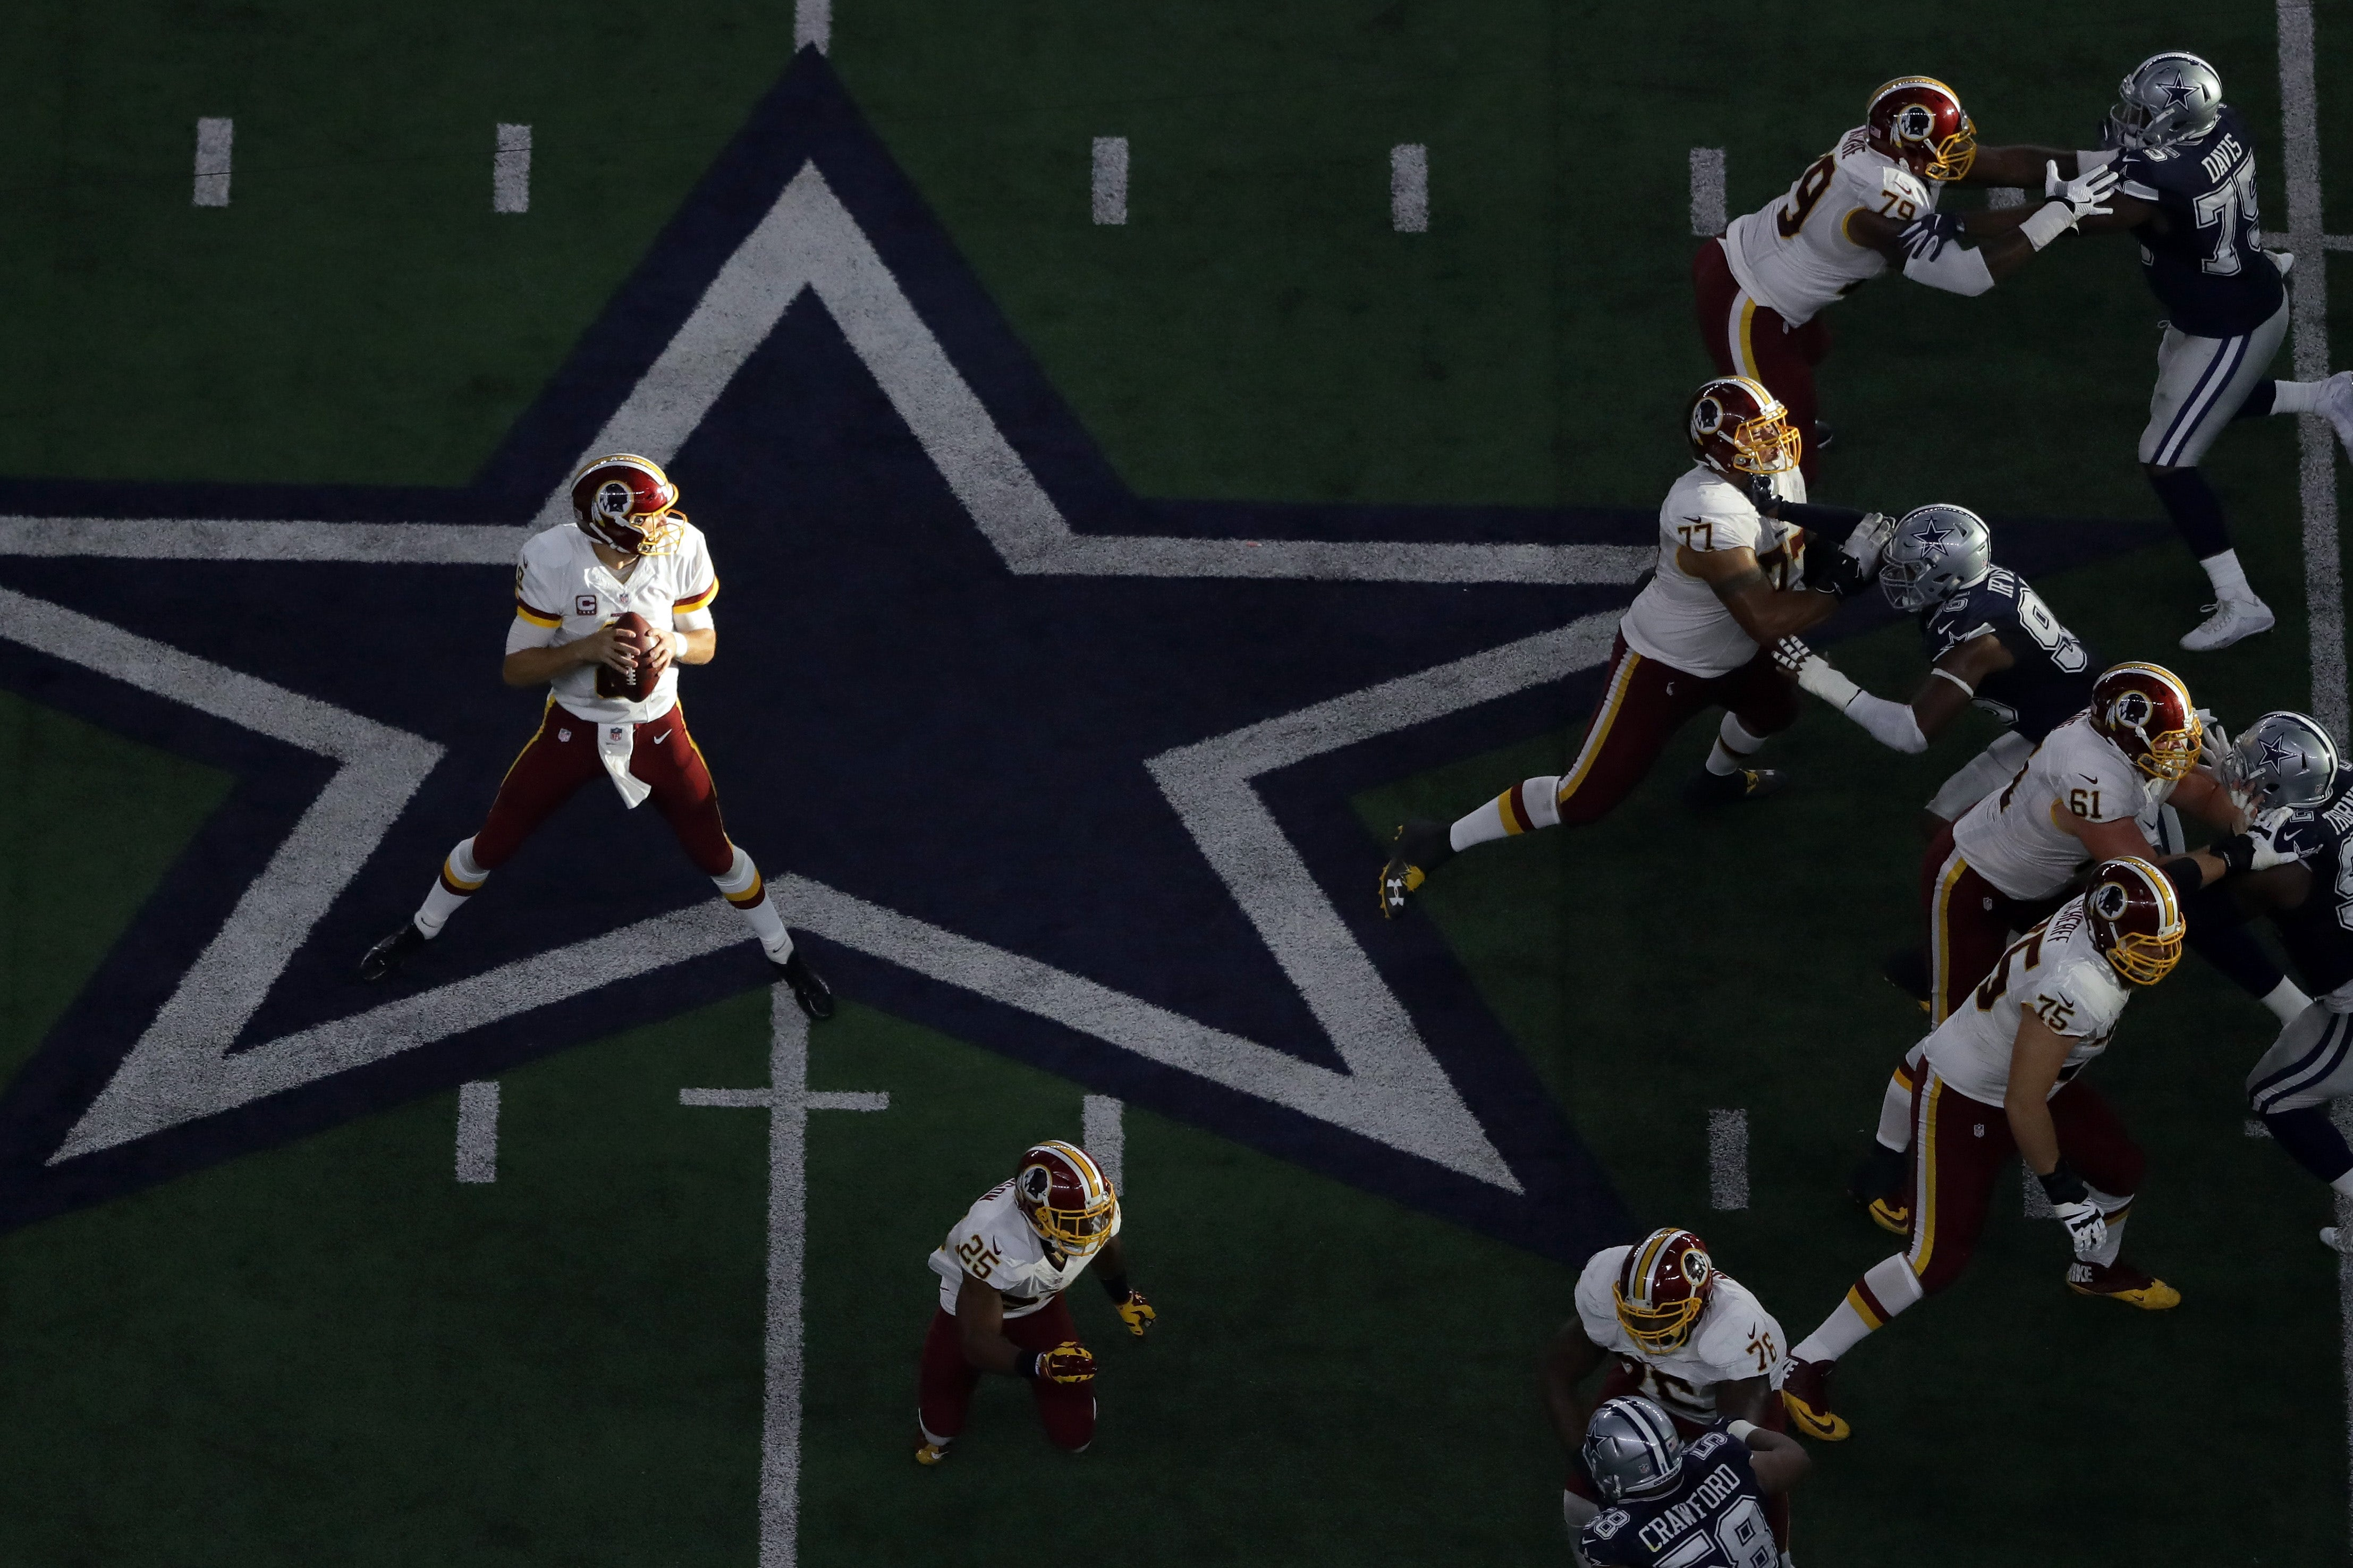 406e2772 The Redskins accomplished a rare offensive feat in their losing ...